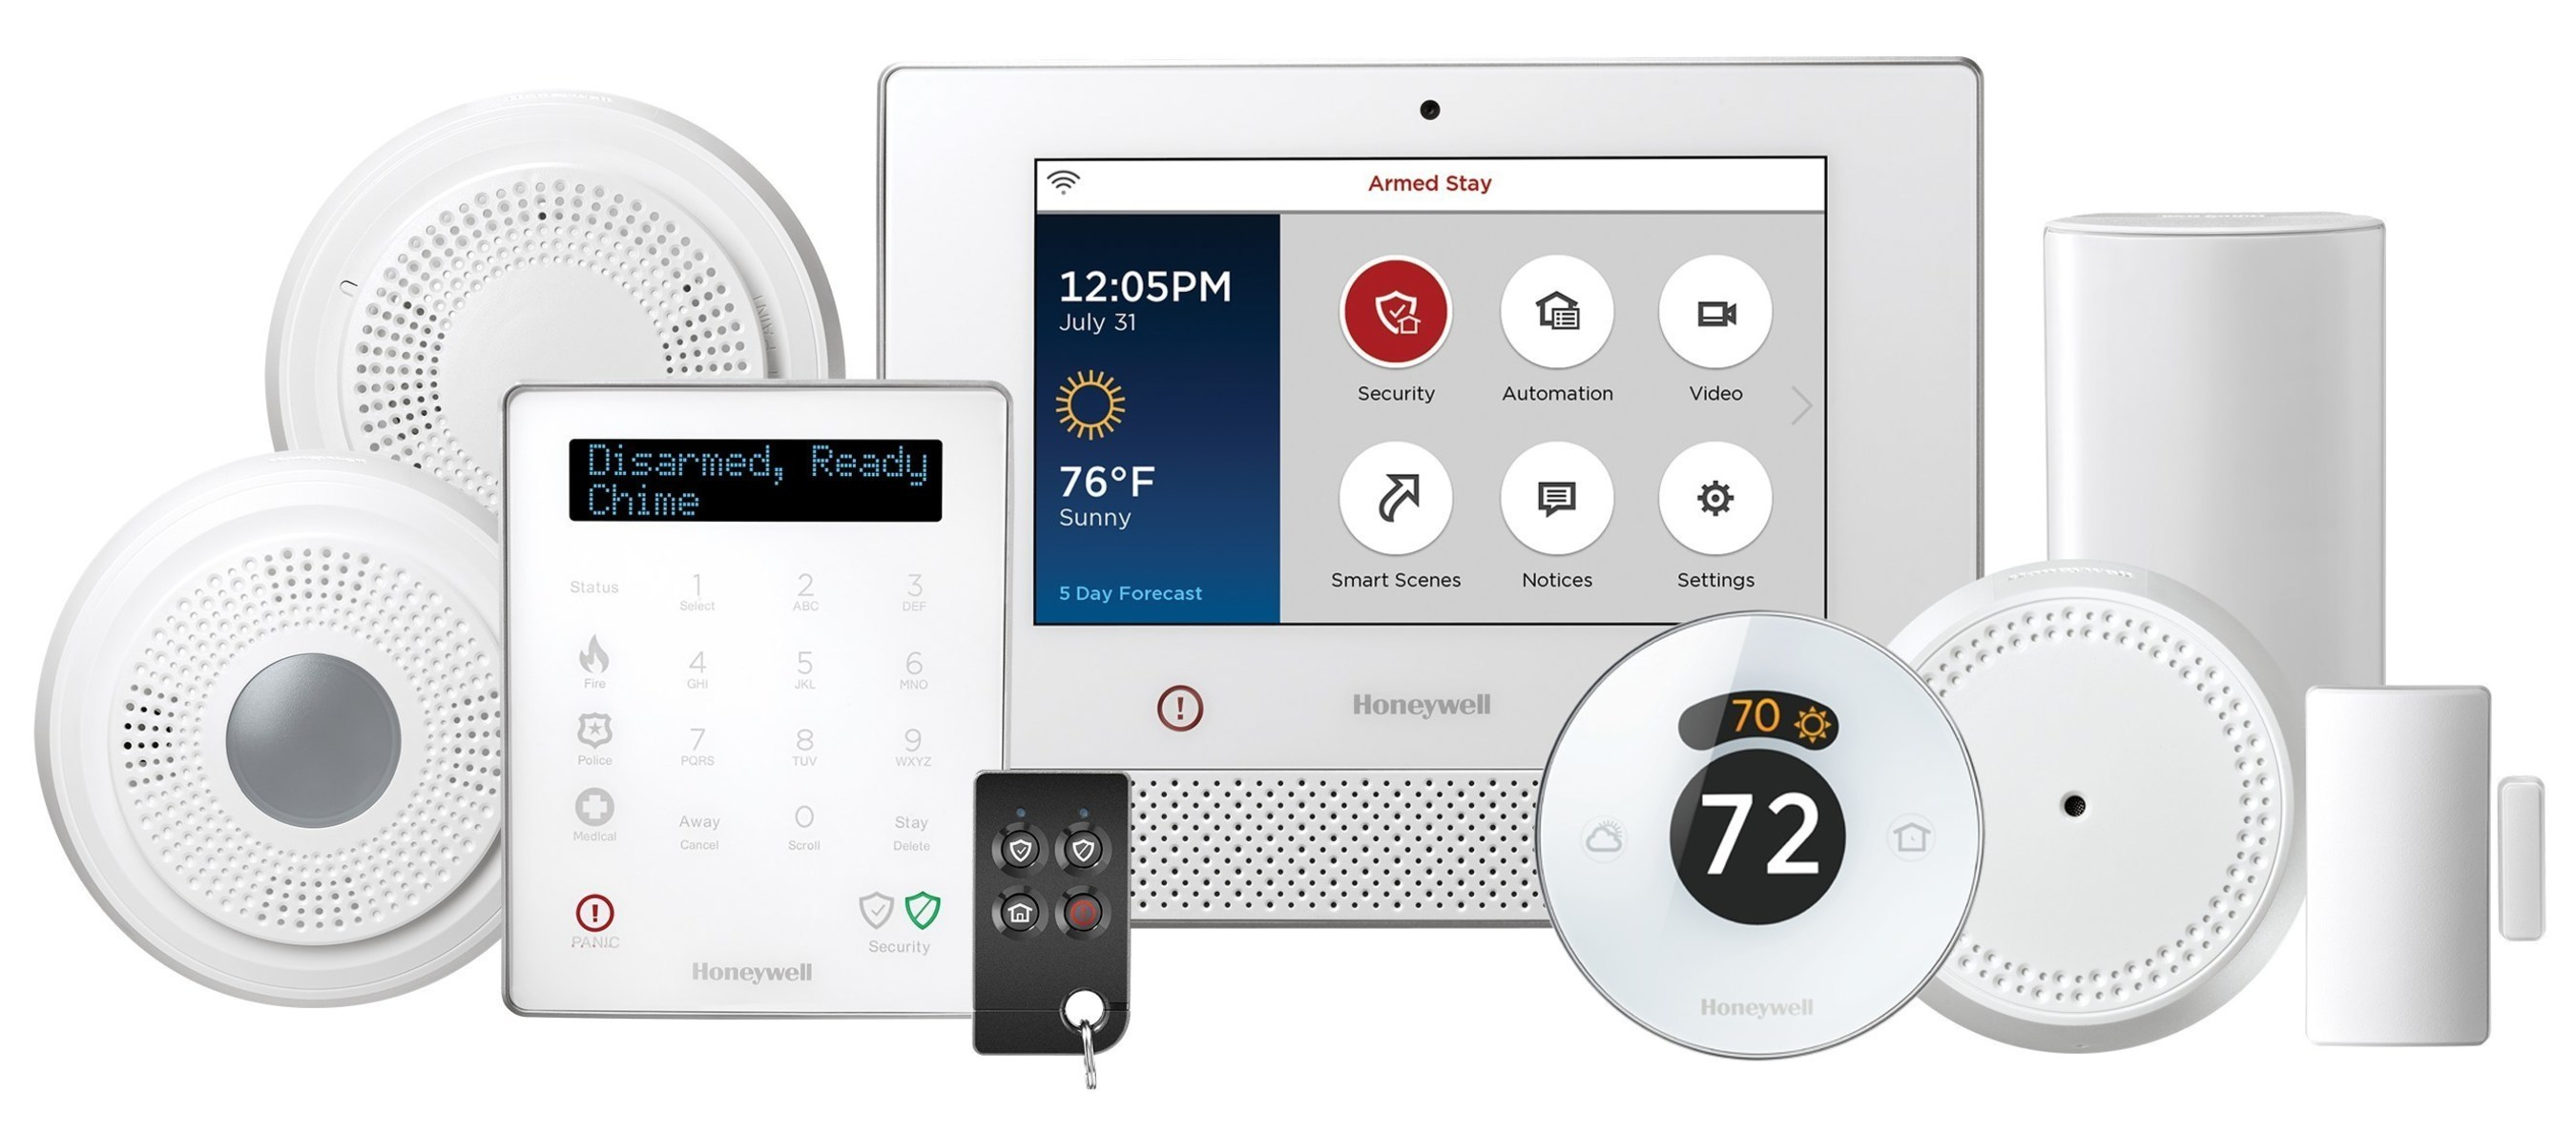 The new Honeywell Lyric Home Security and Control System, with the Honeywell Lyric Round Wi-Fi Thermostat.